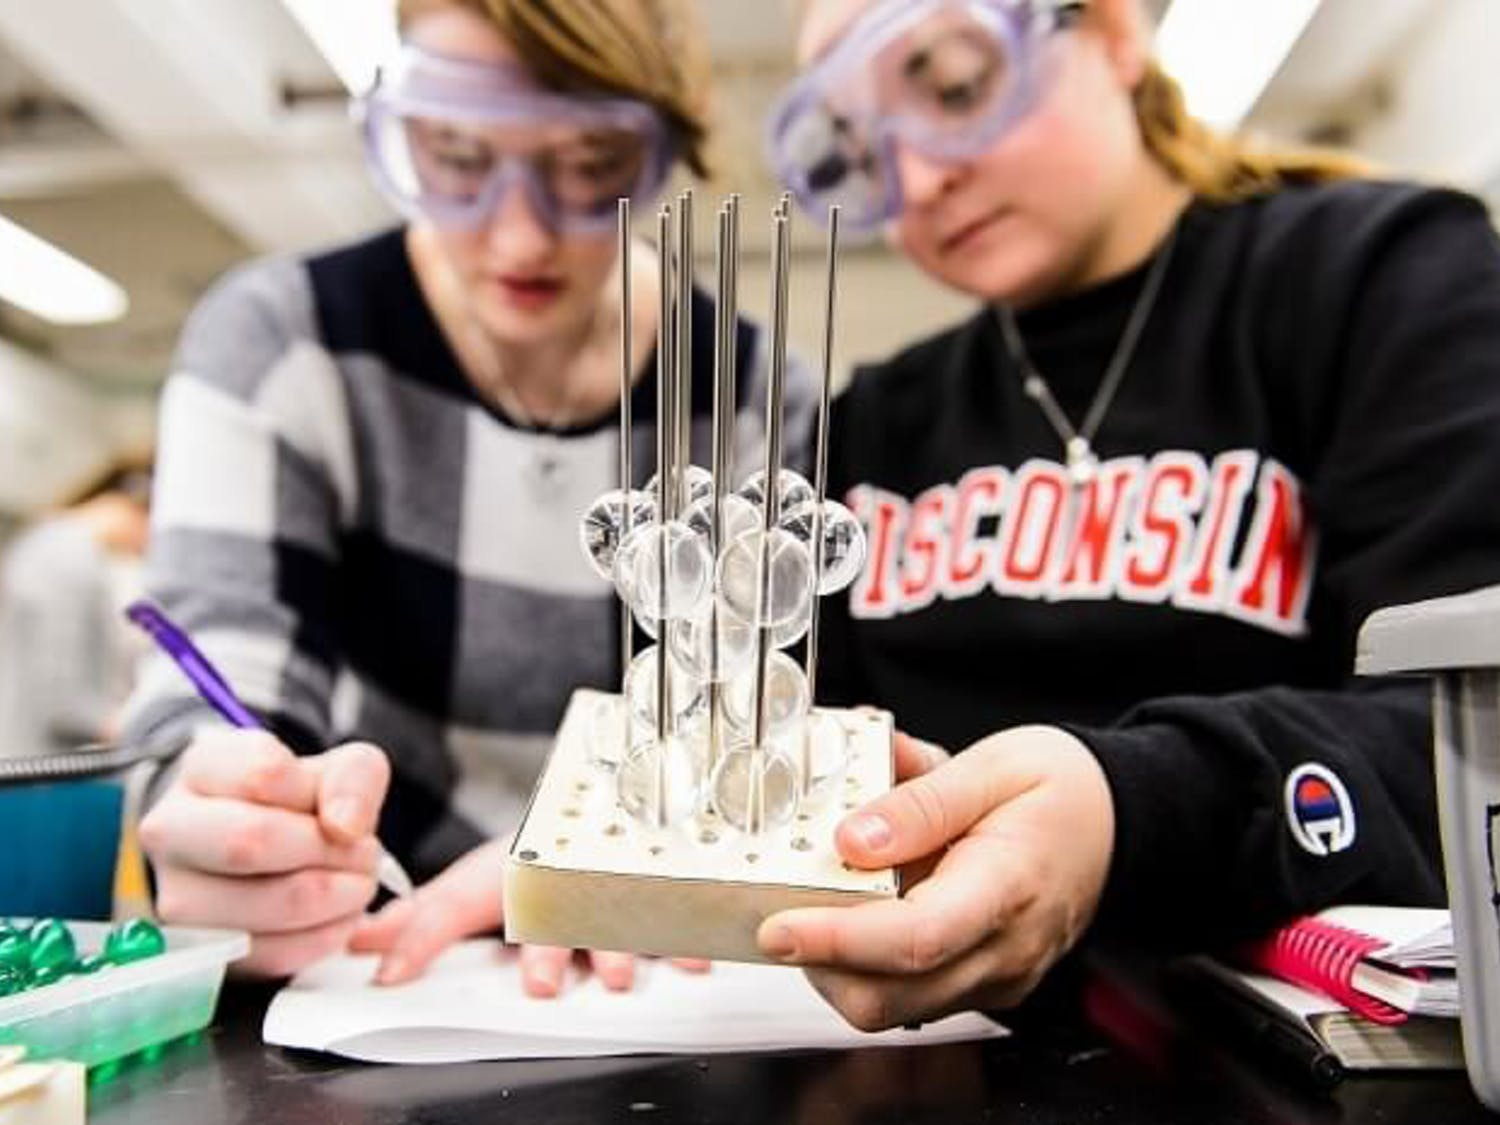 Two UW-Madison students participate in a science experiment in their chemistry class.